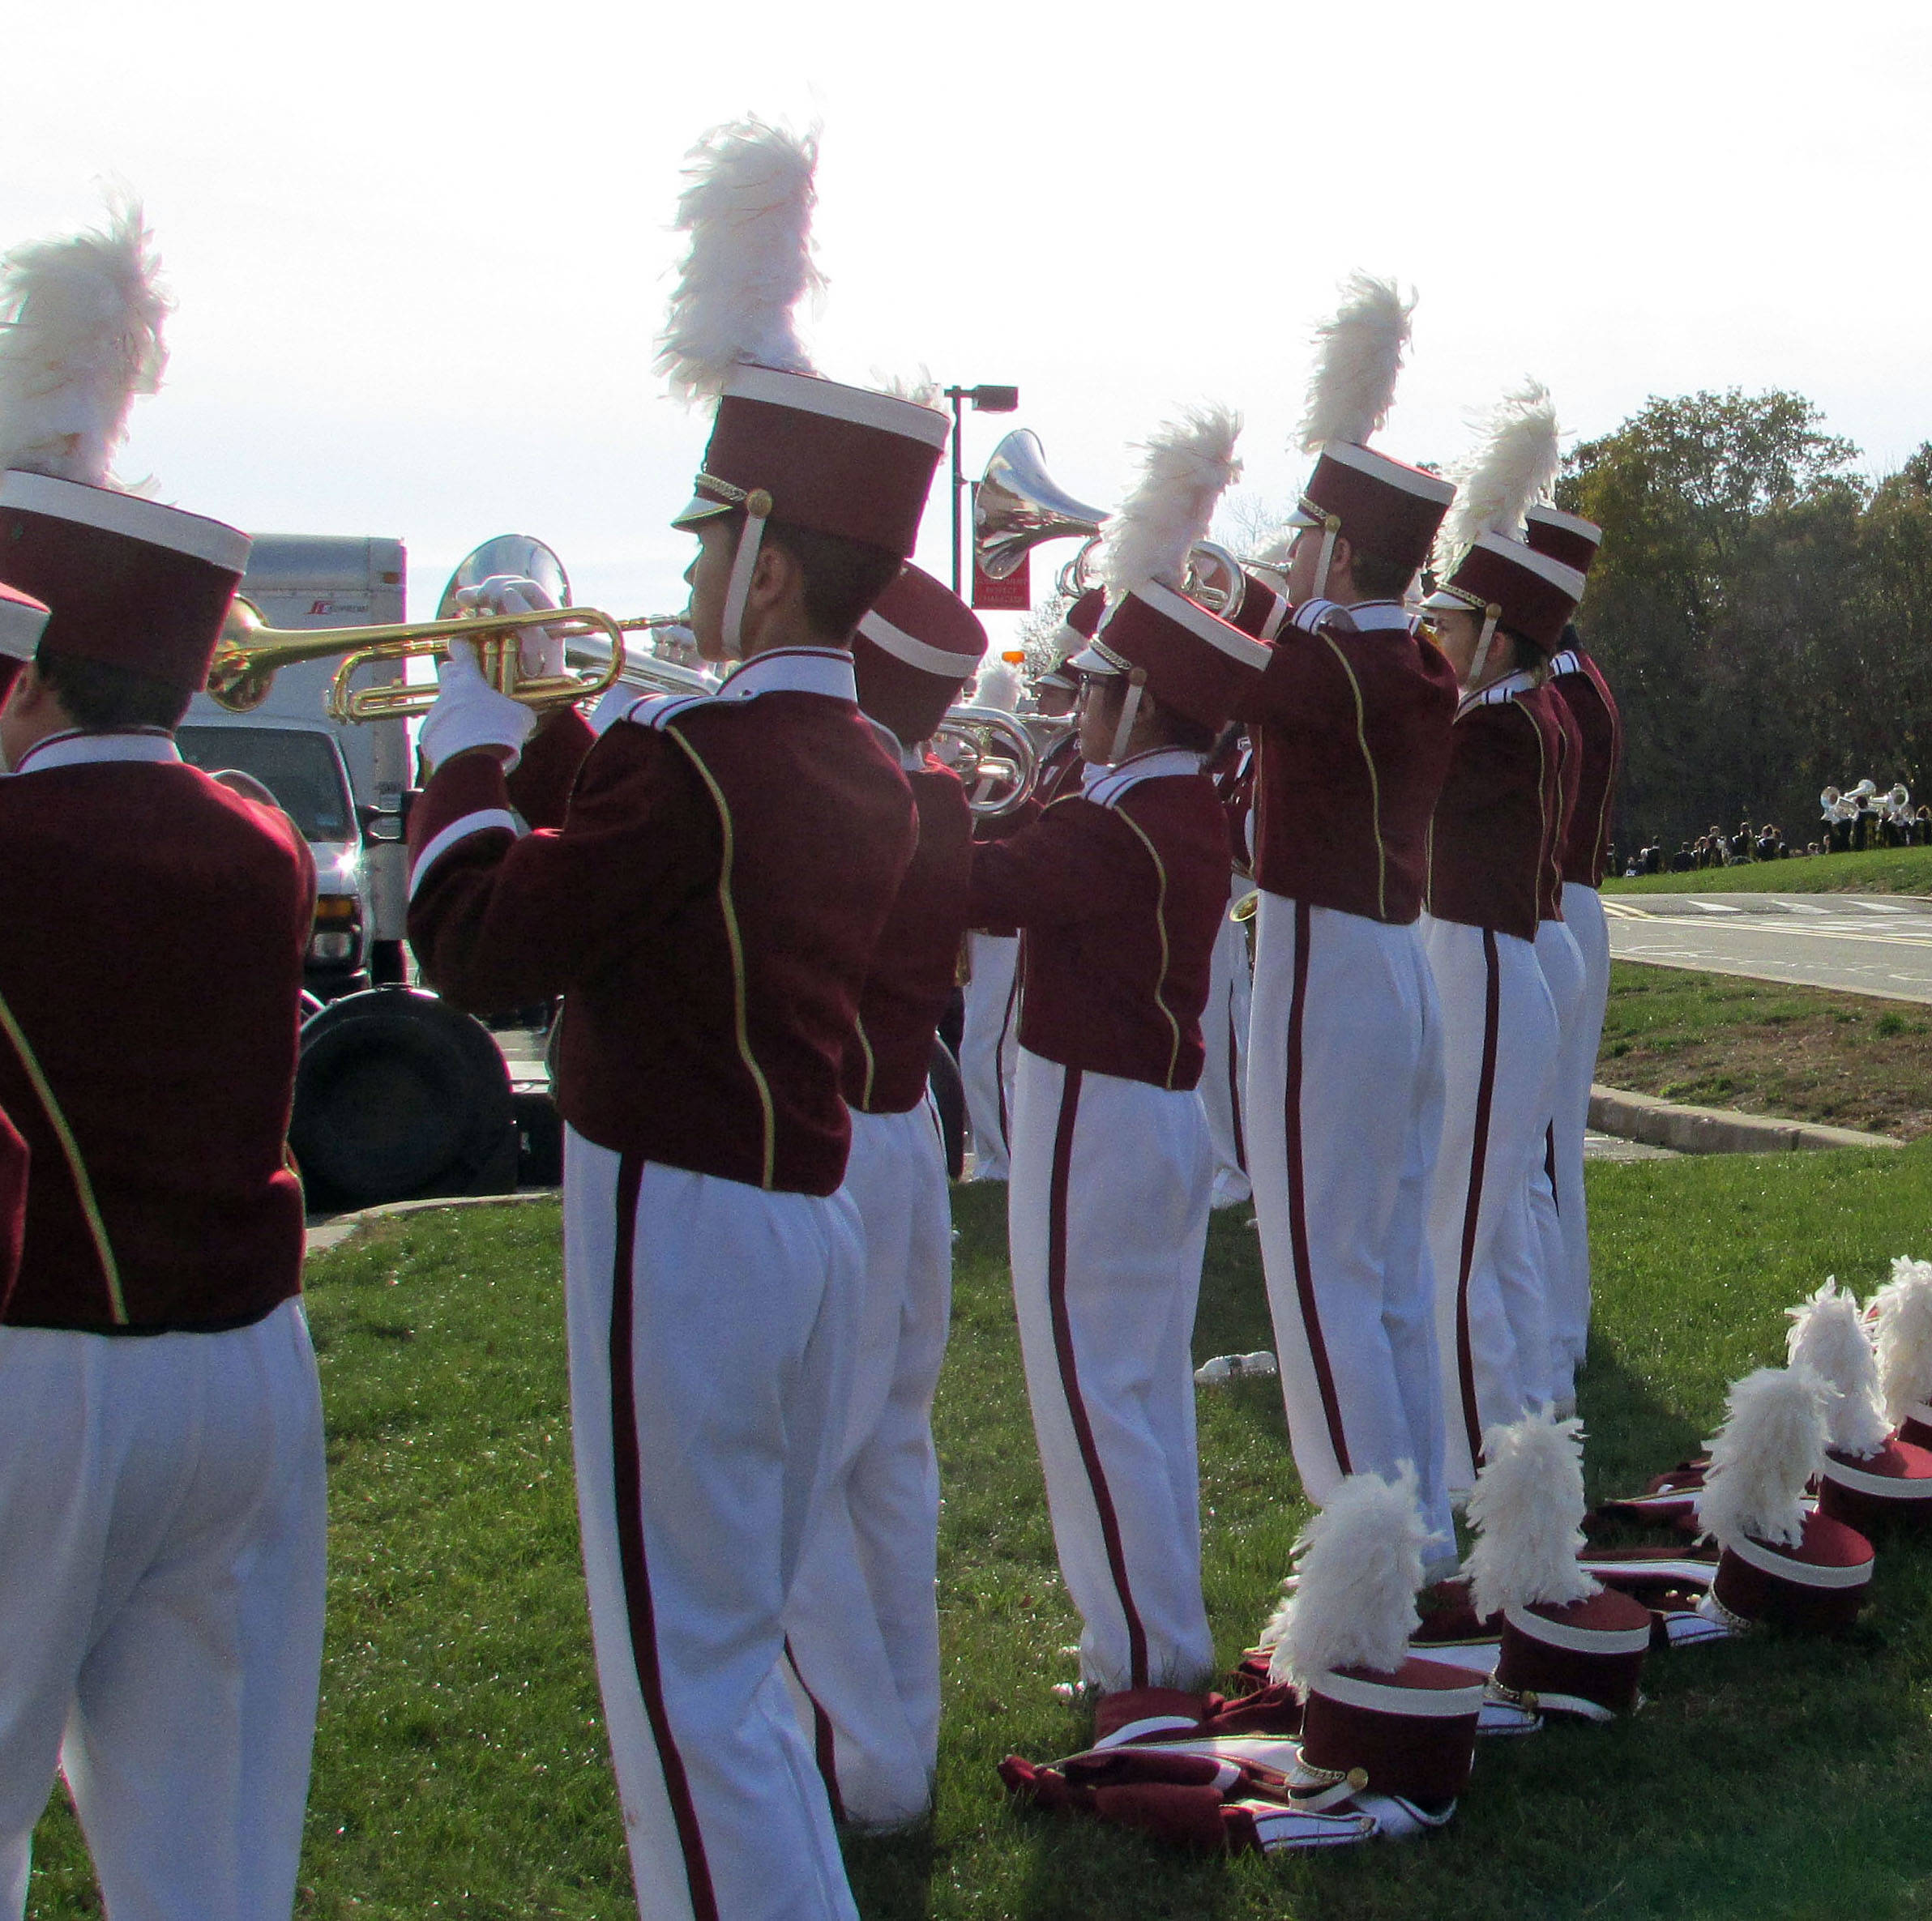 c6eb18949acf217d4b60_marching_band_2.jpg